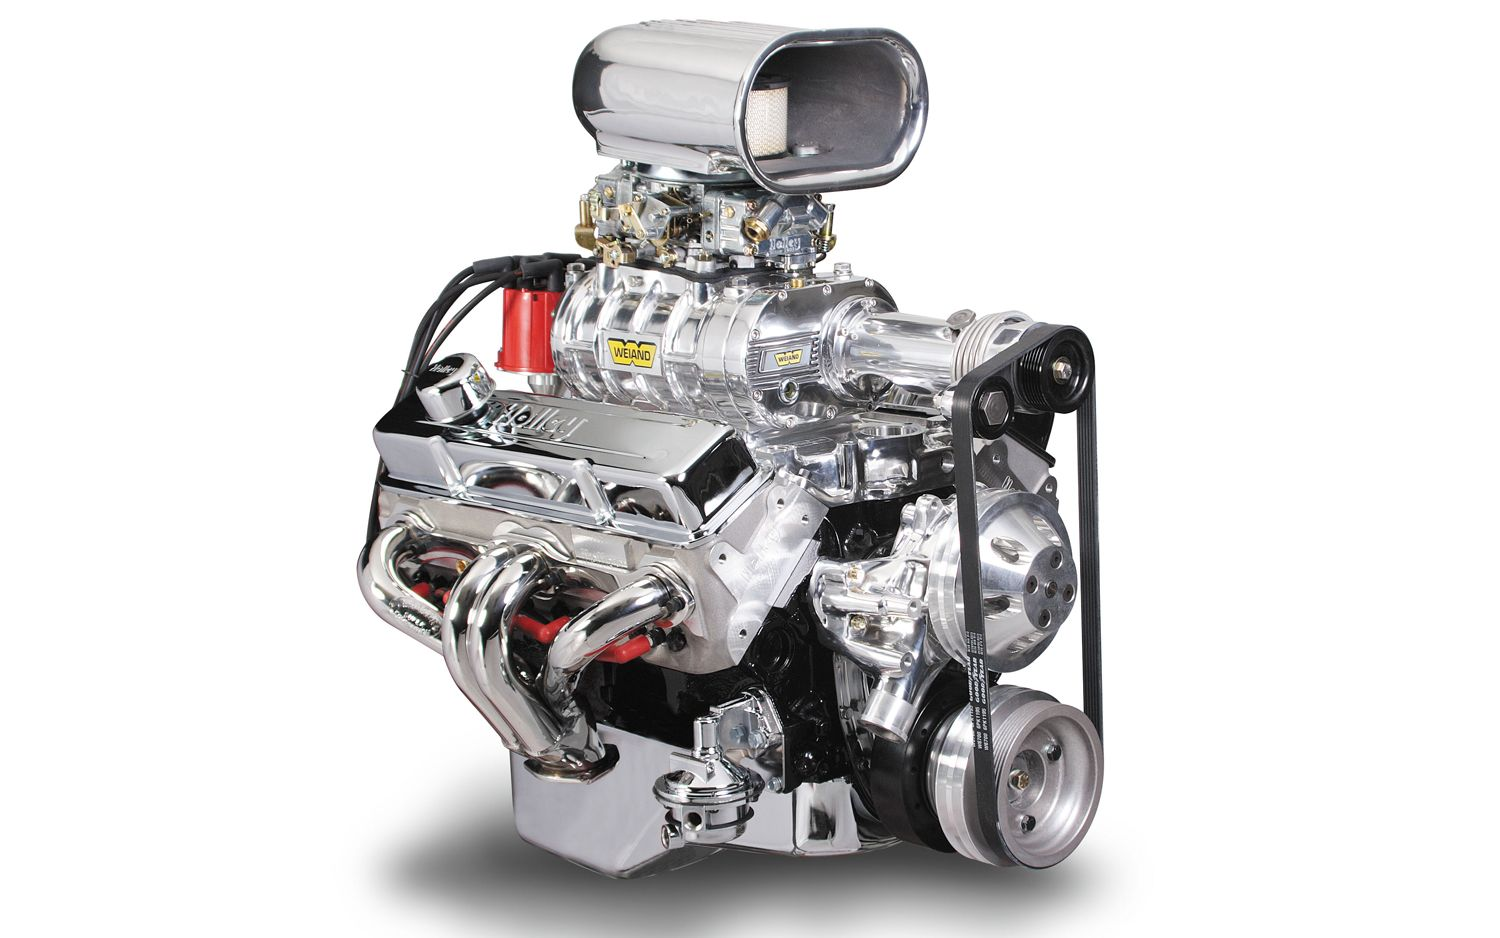 All Chevy 350 chevy engines : Holley Modified Small-Block Chevy V8 #SouthwestEngines   Engines ...